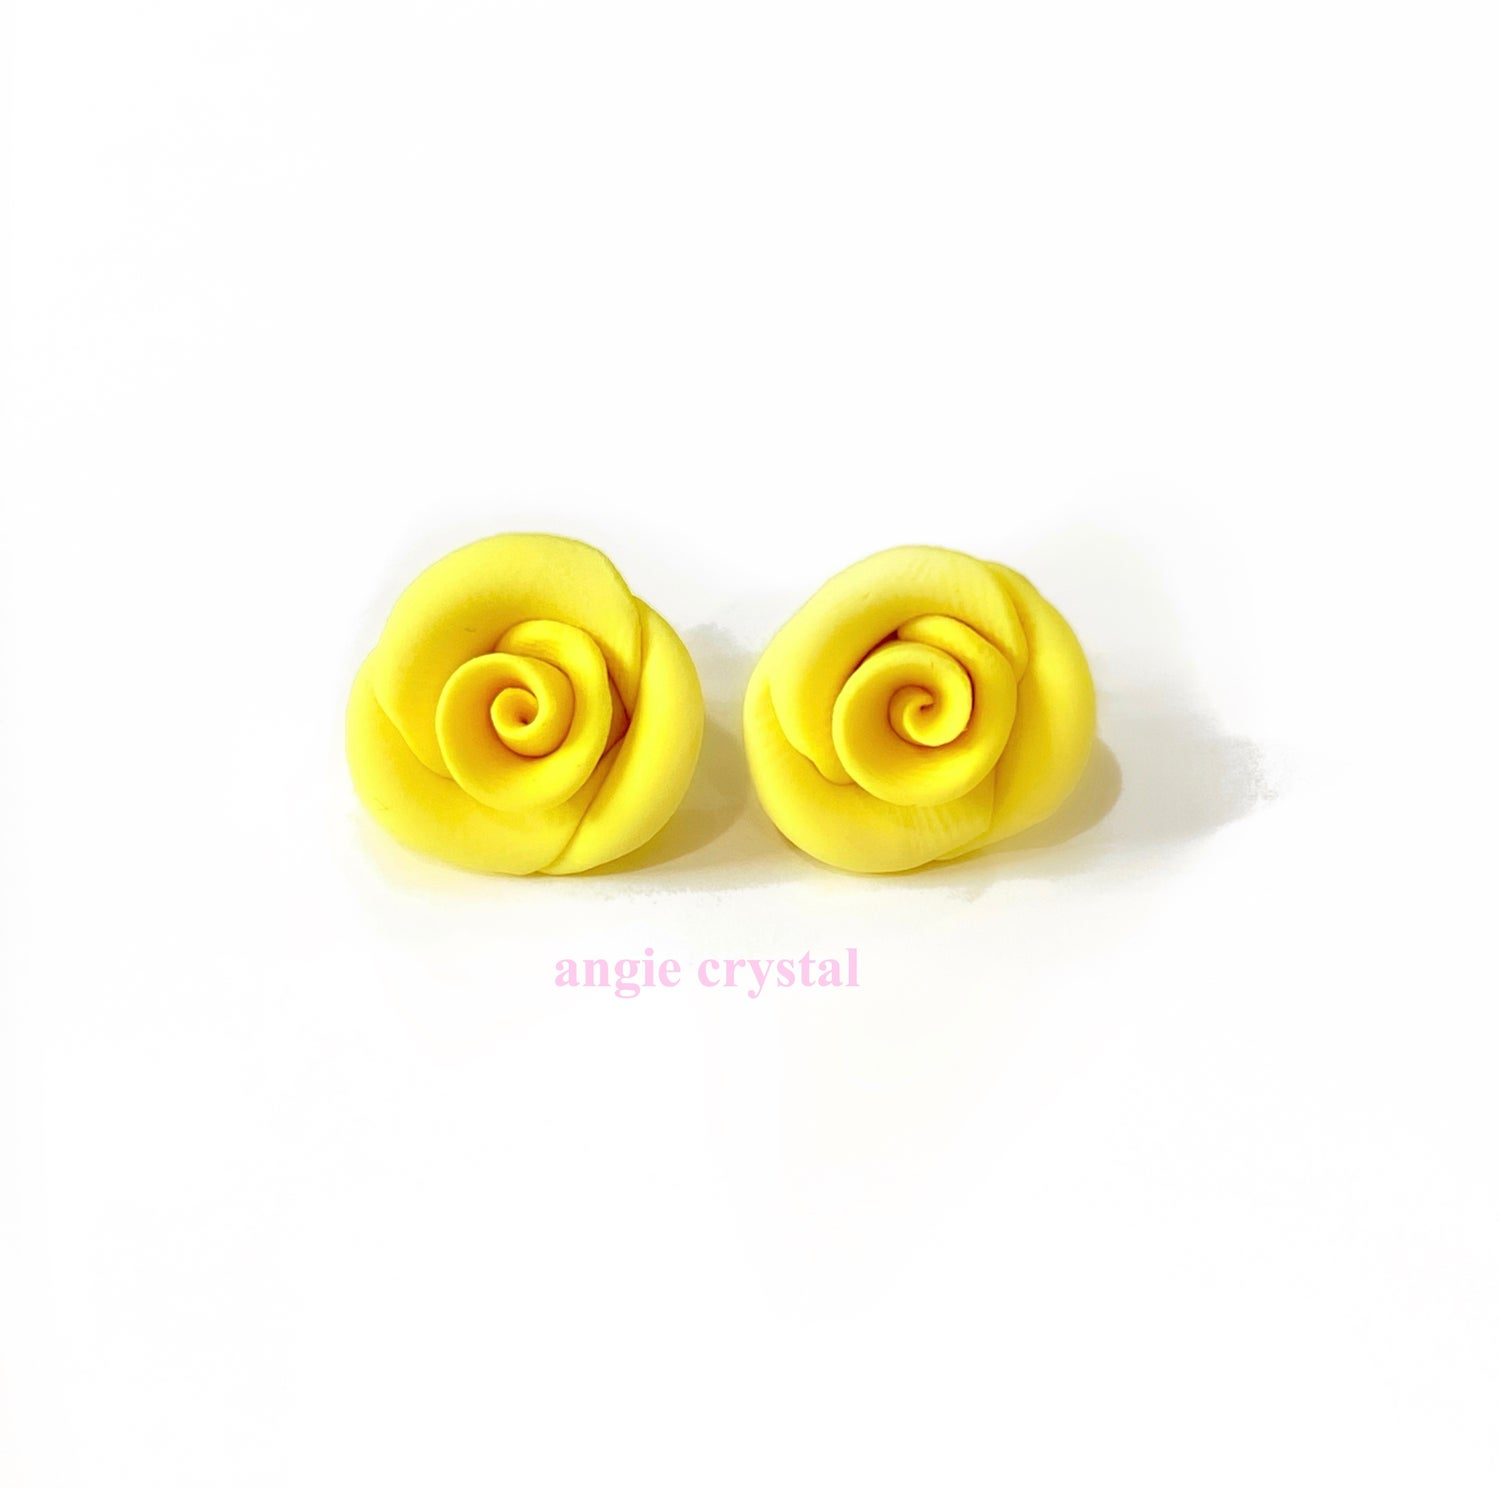 Image of Yellow Rose Stud Earrings